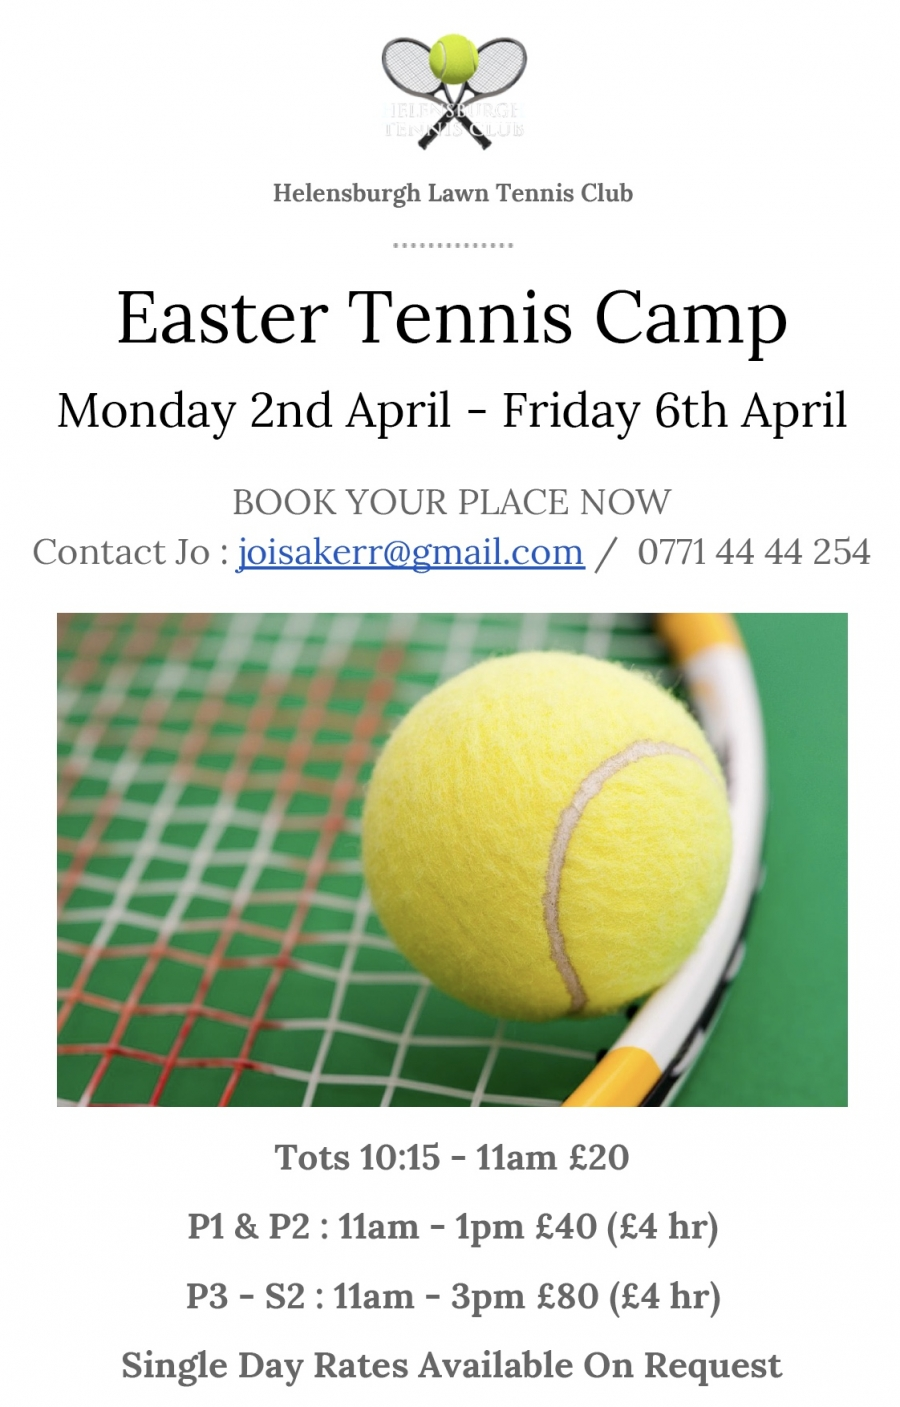 Book now for Easter Camp